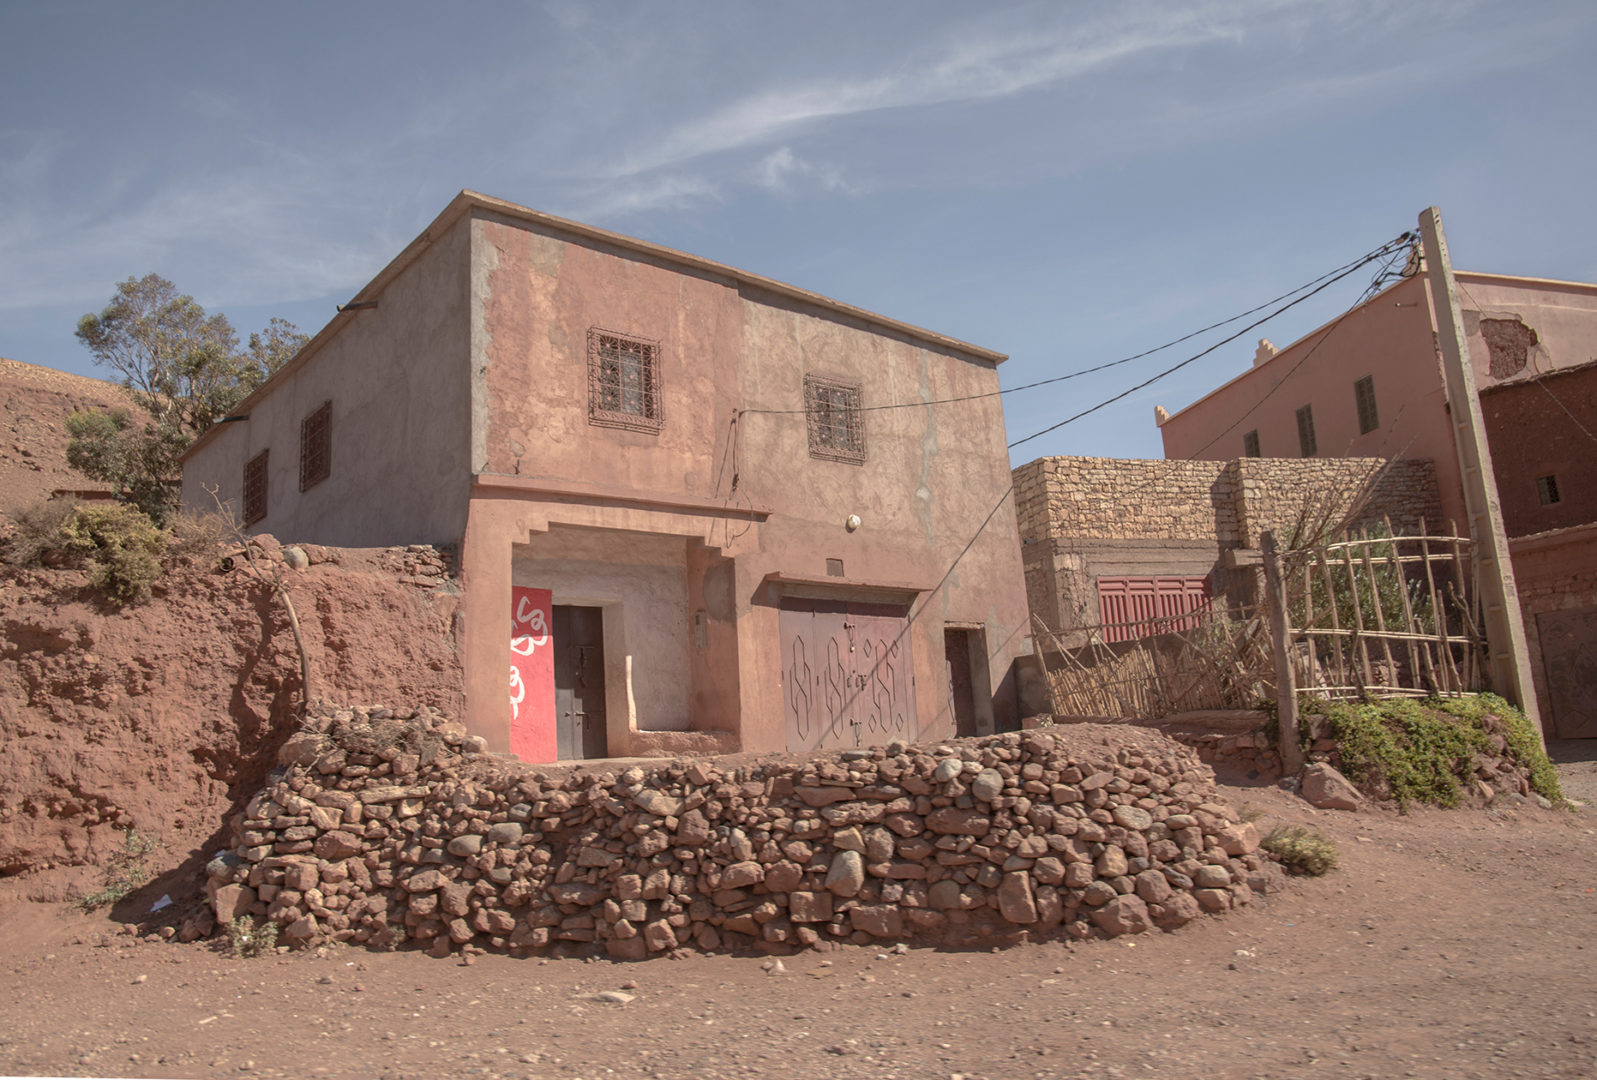 A country house in the Sahara region of Morocco